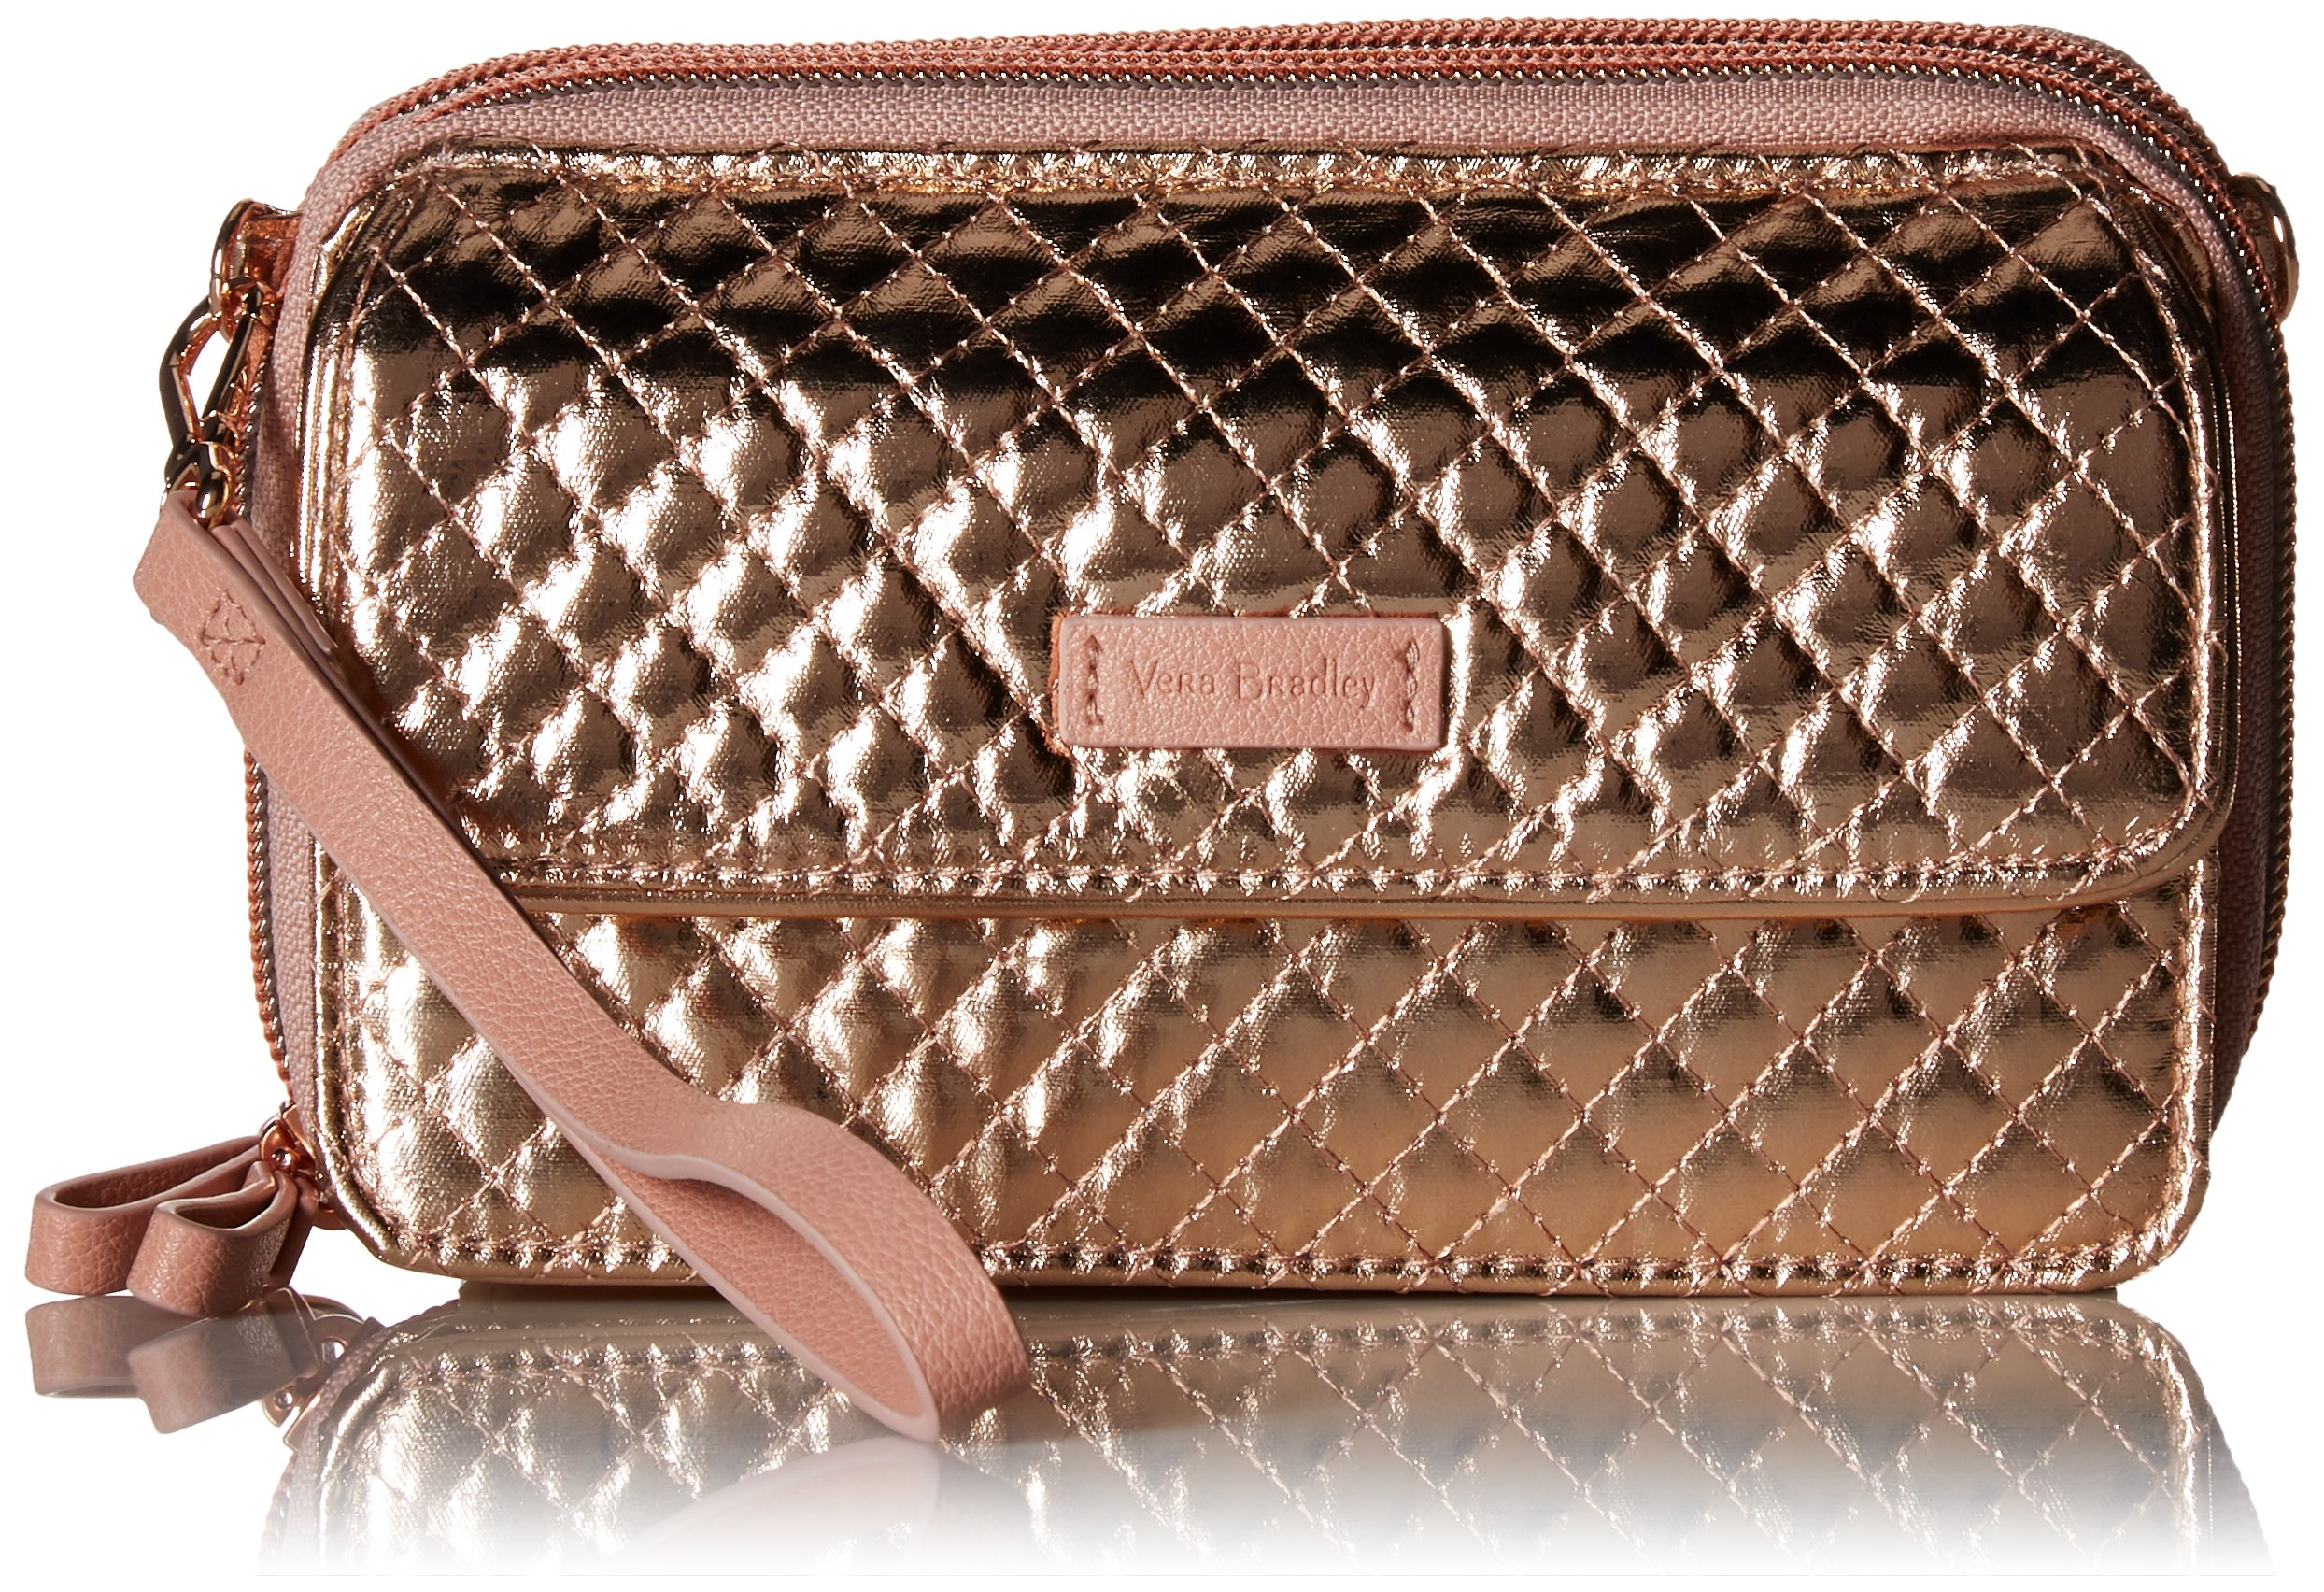 Vera Bradley Iconic Rfid All in One Crossbody, Foiled Cotton, Rose Gold Shimmer by Vera Bradley (Image #1)